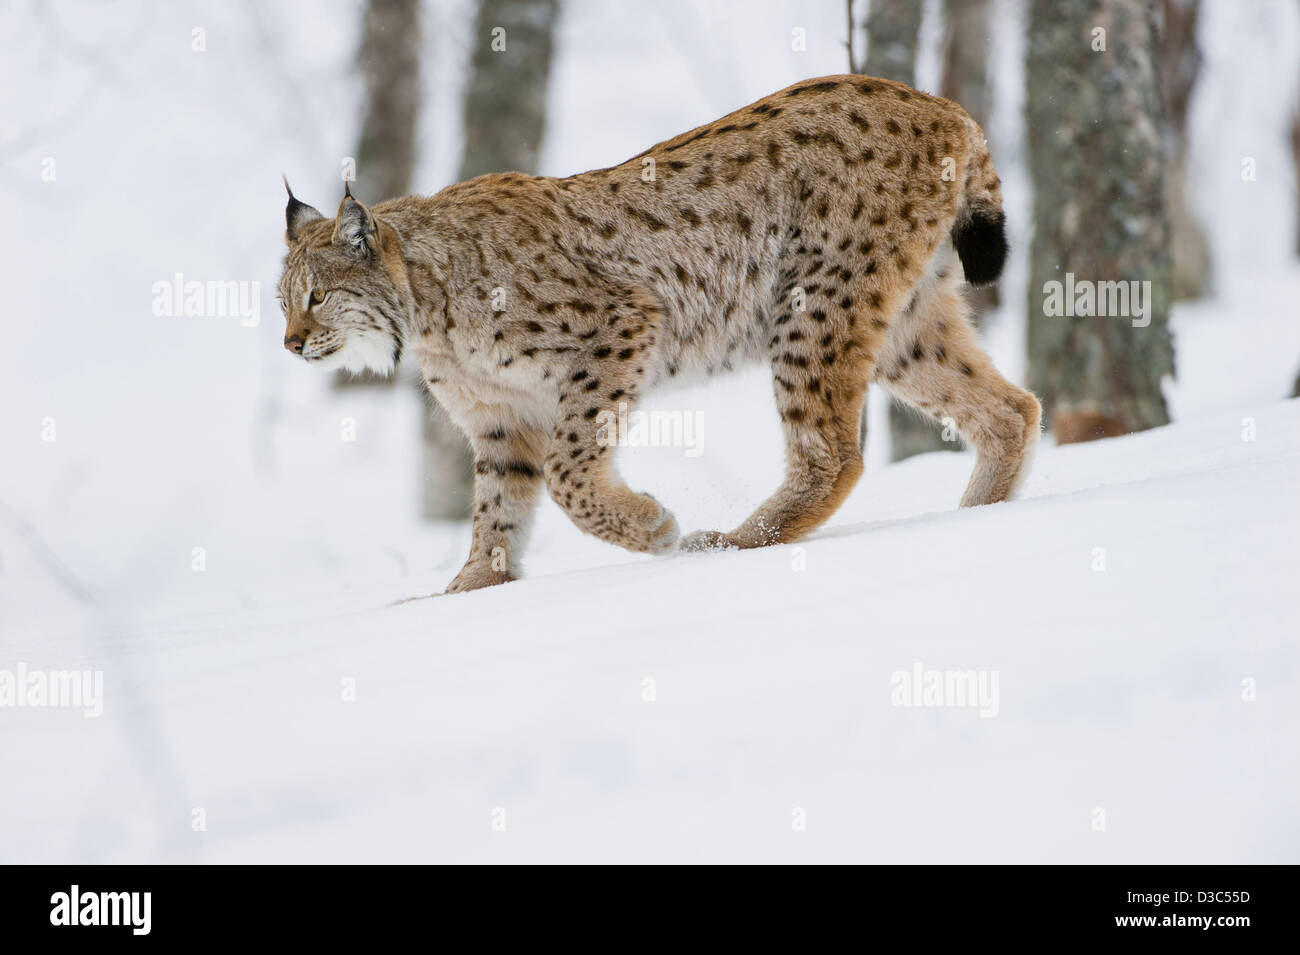 Eurasian Lynx (Lynx lynx) in winter fur over snow and under snowfall, controlled conditions, Norway - Stock Image